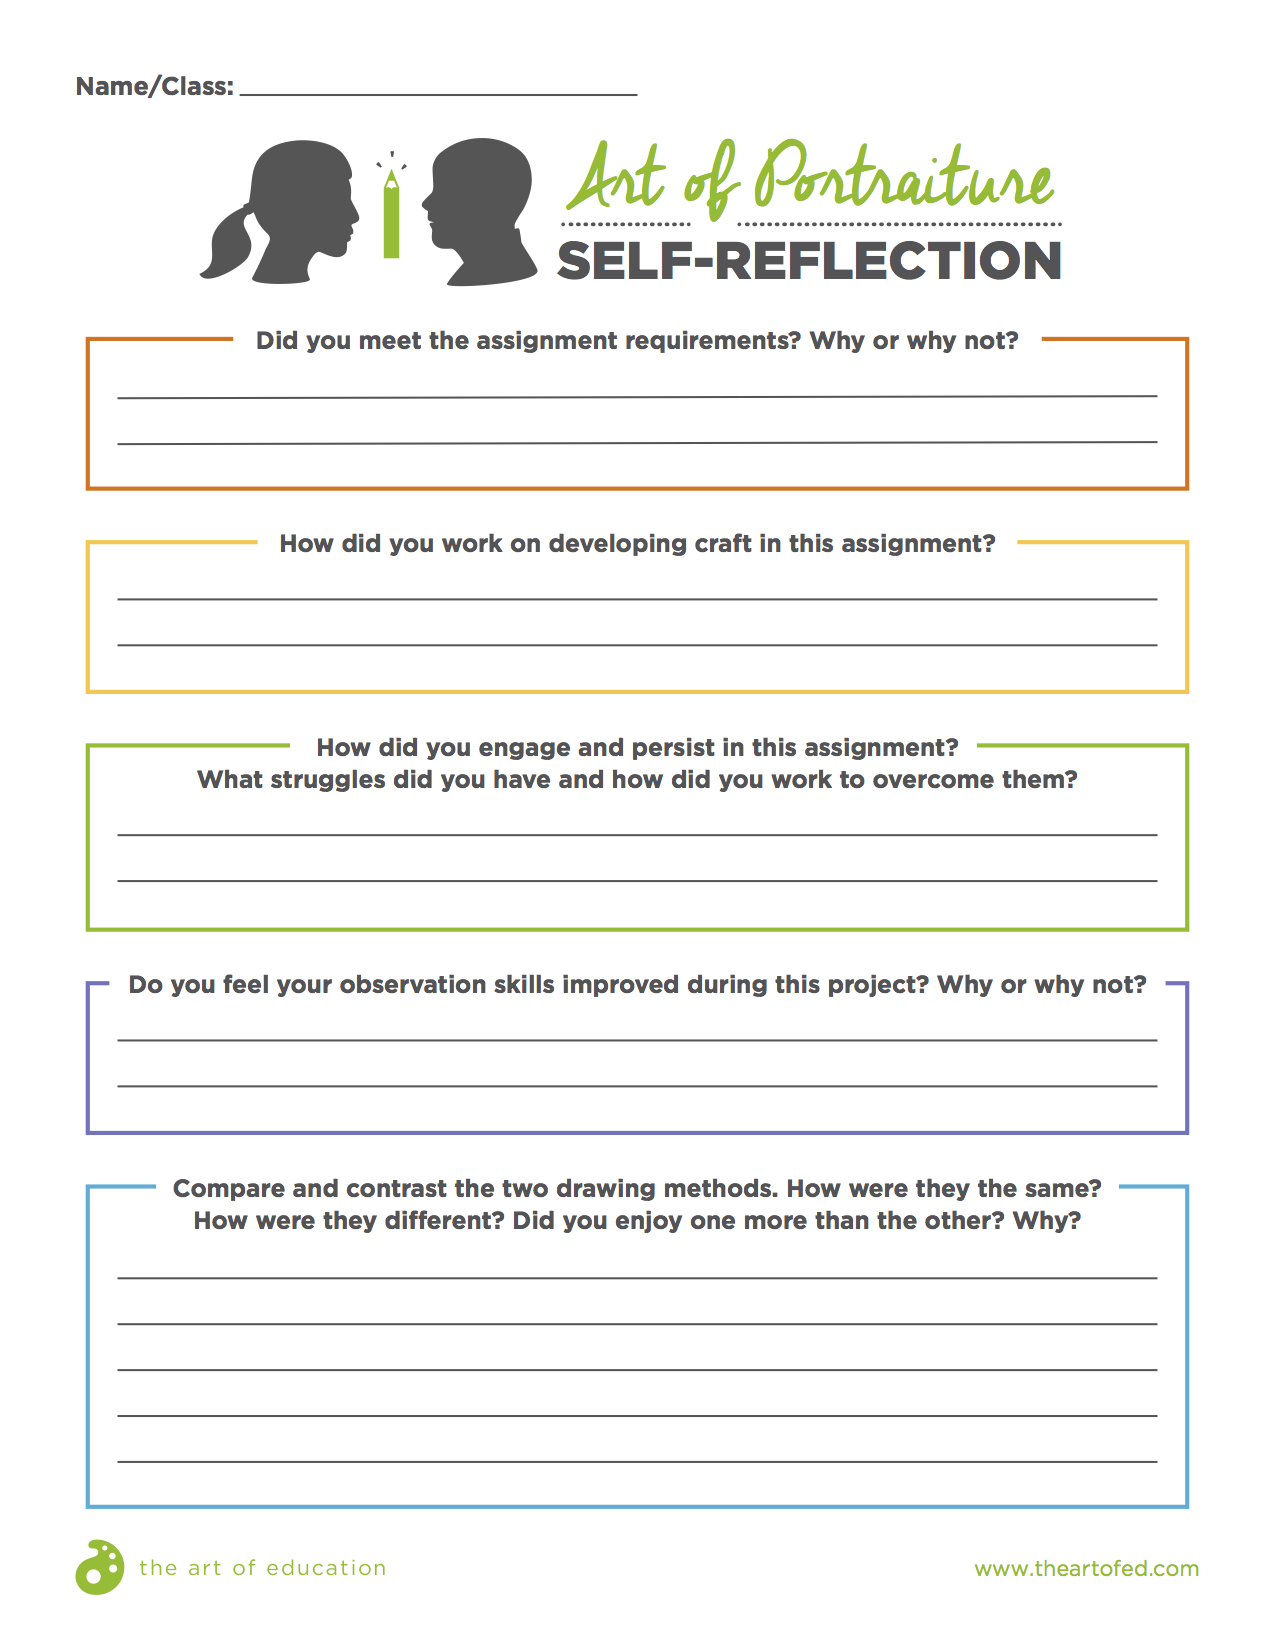 self-reflection download